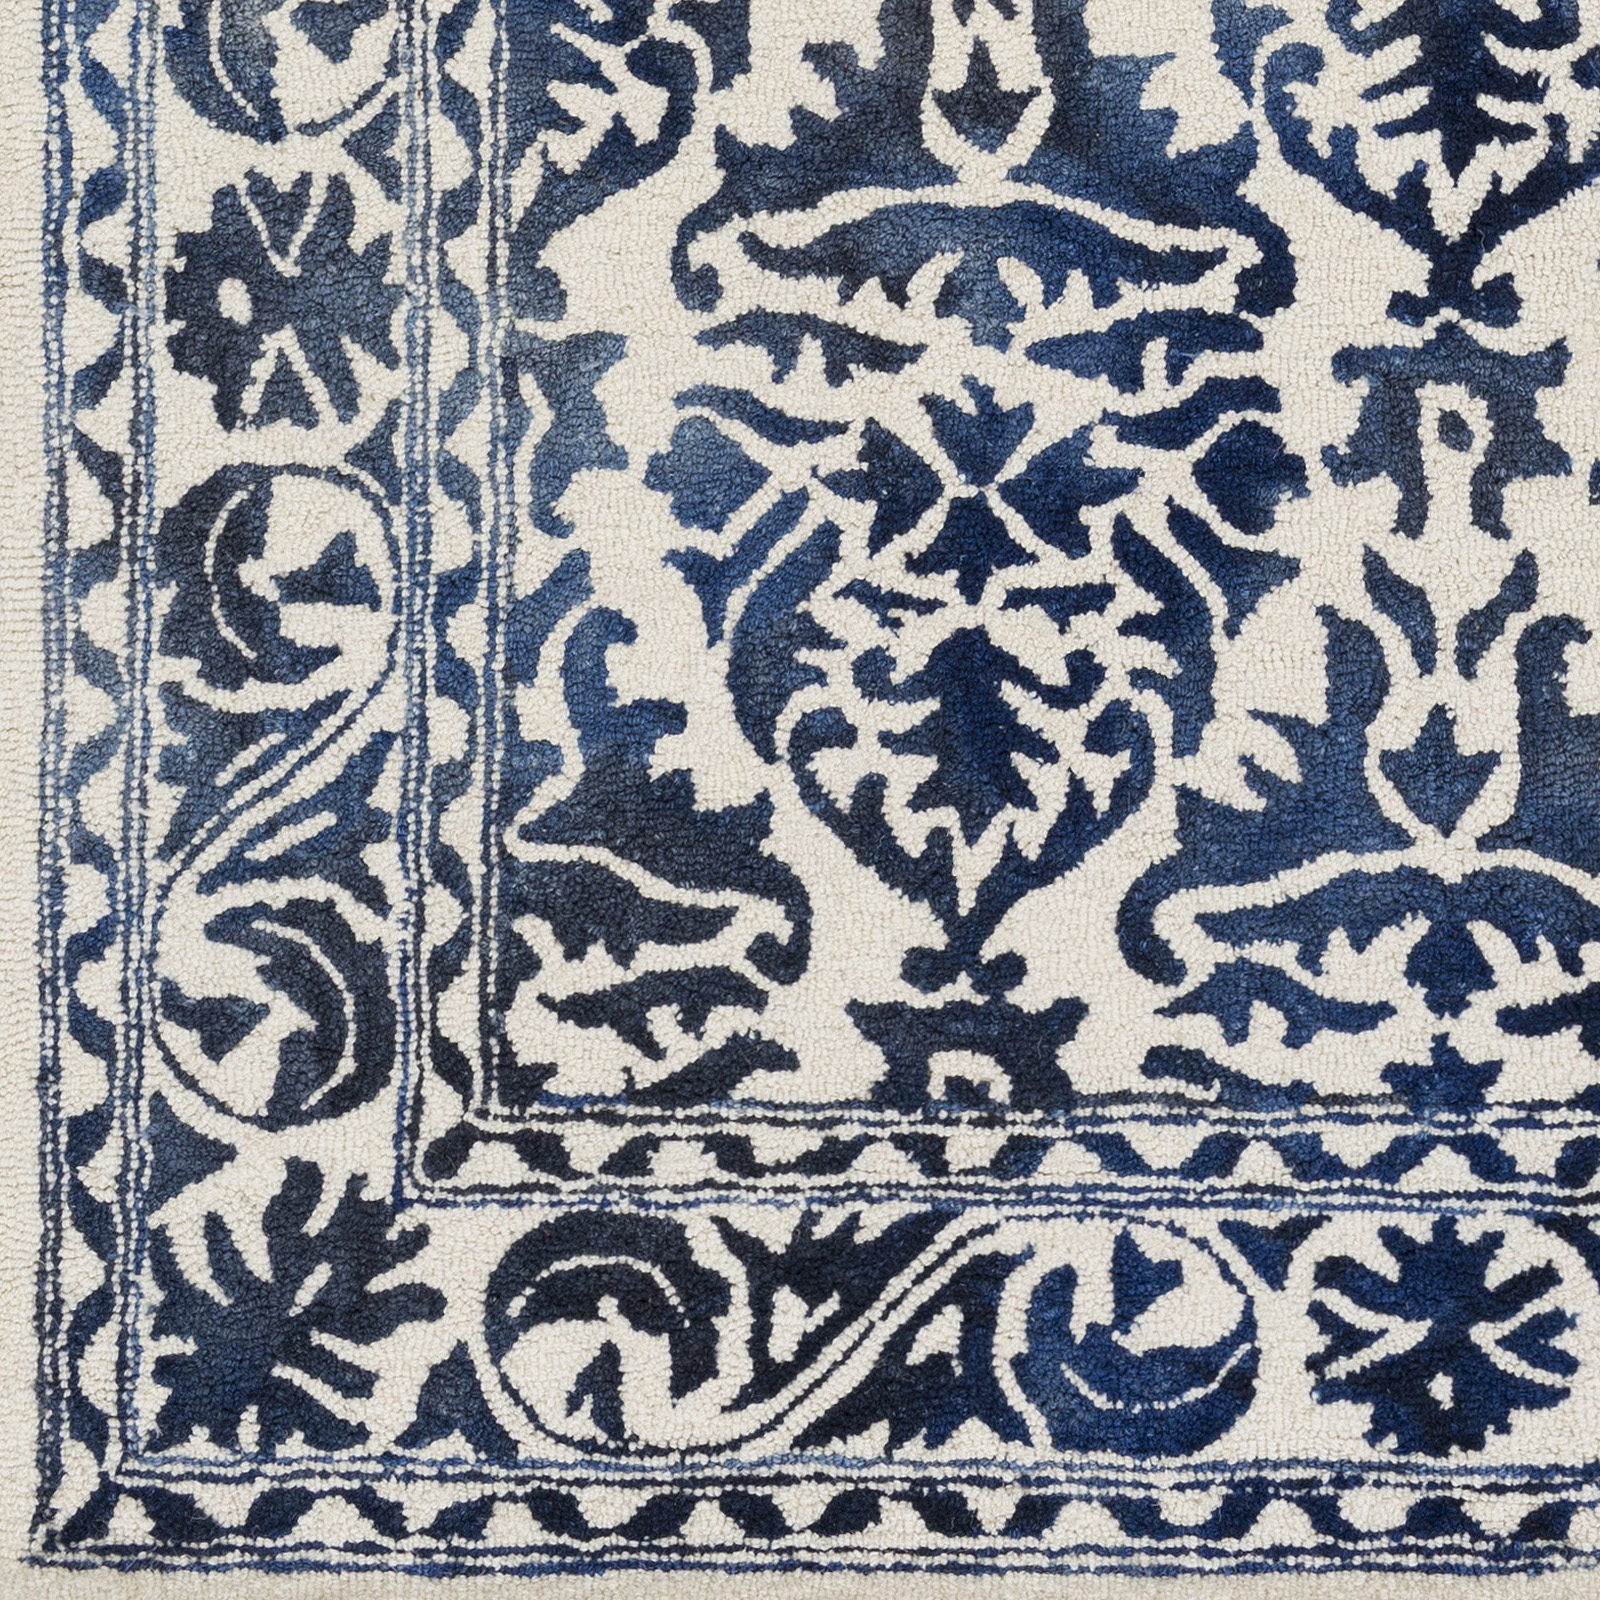 Artistic Weavers Organic Awog 2302 Evelyn Navy Off White Rug